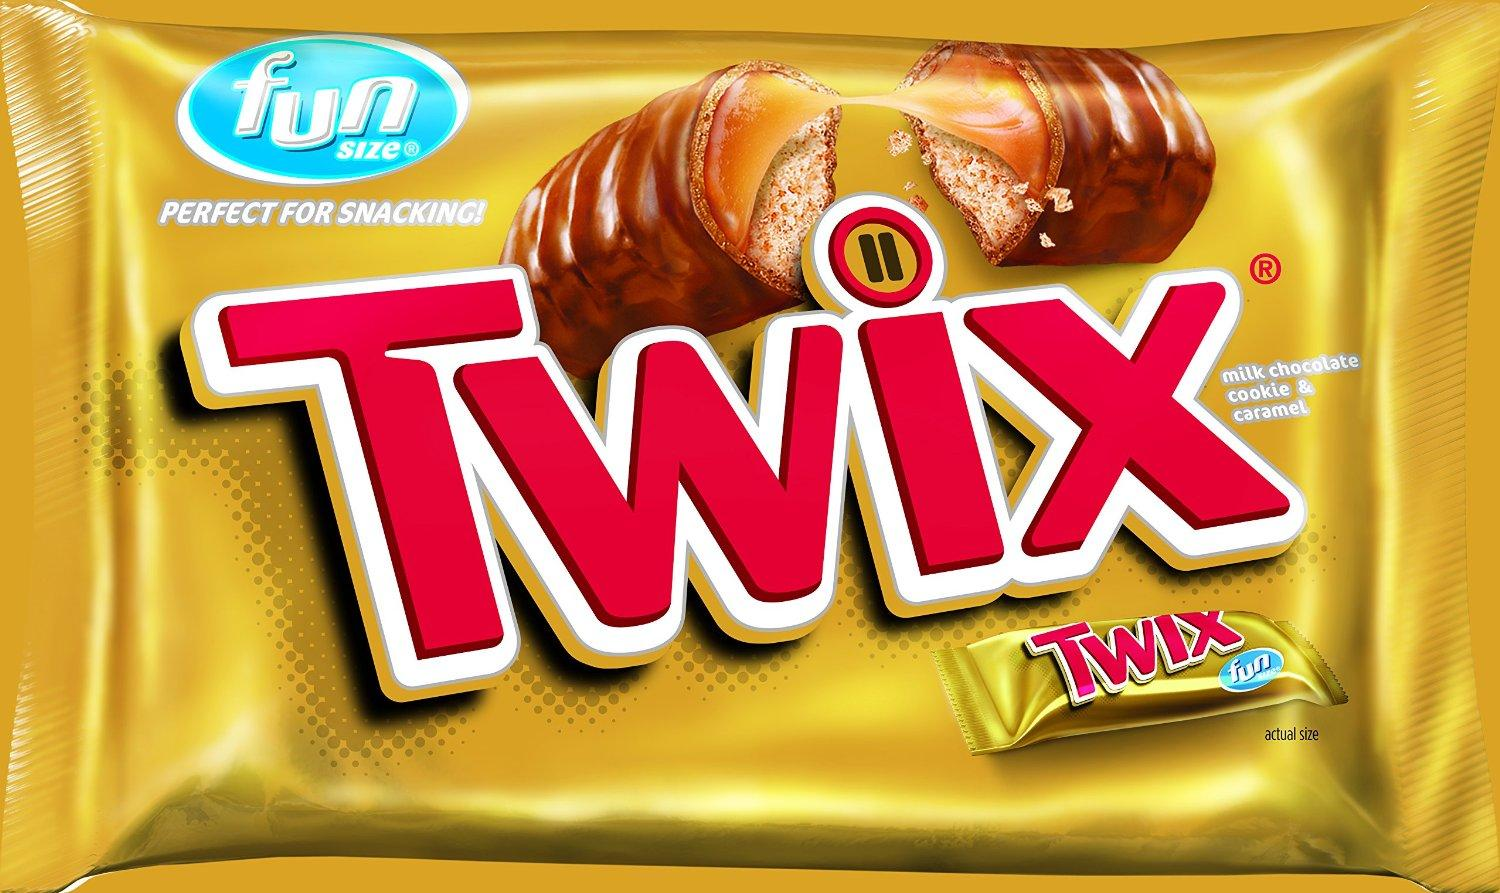 Twix Caramel Fun Size Chocolate Candy, 22.34 Ounce Bag (Pack of 2) @ Amazon